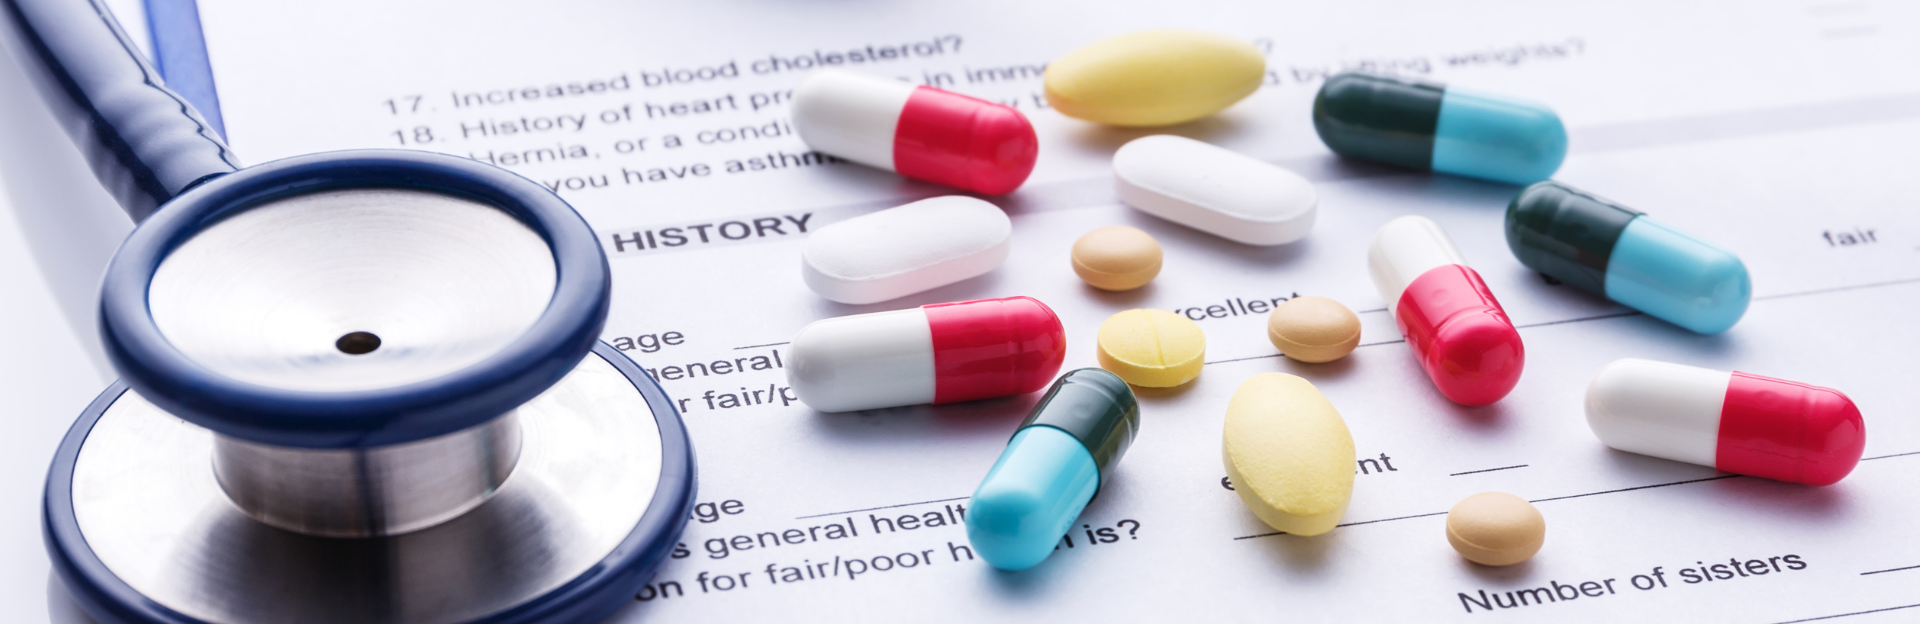 Differences between acute medication & chronic medication